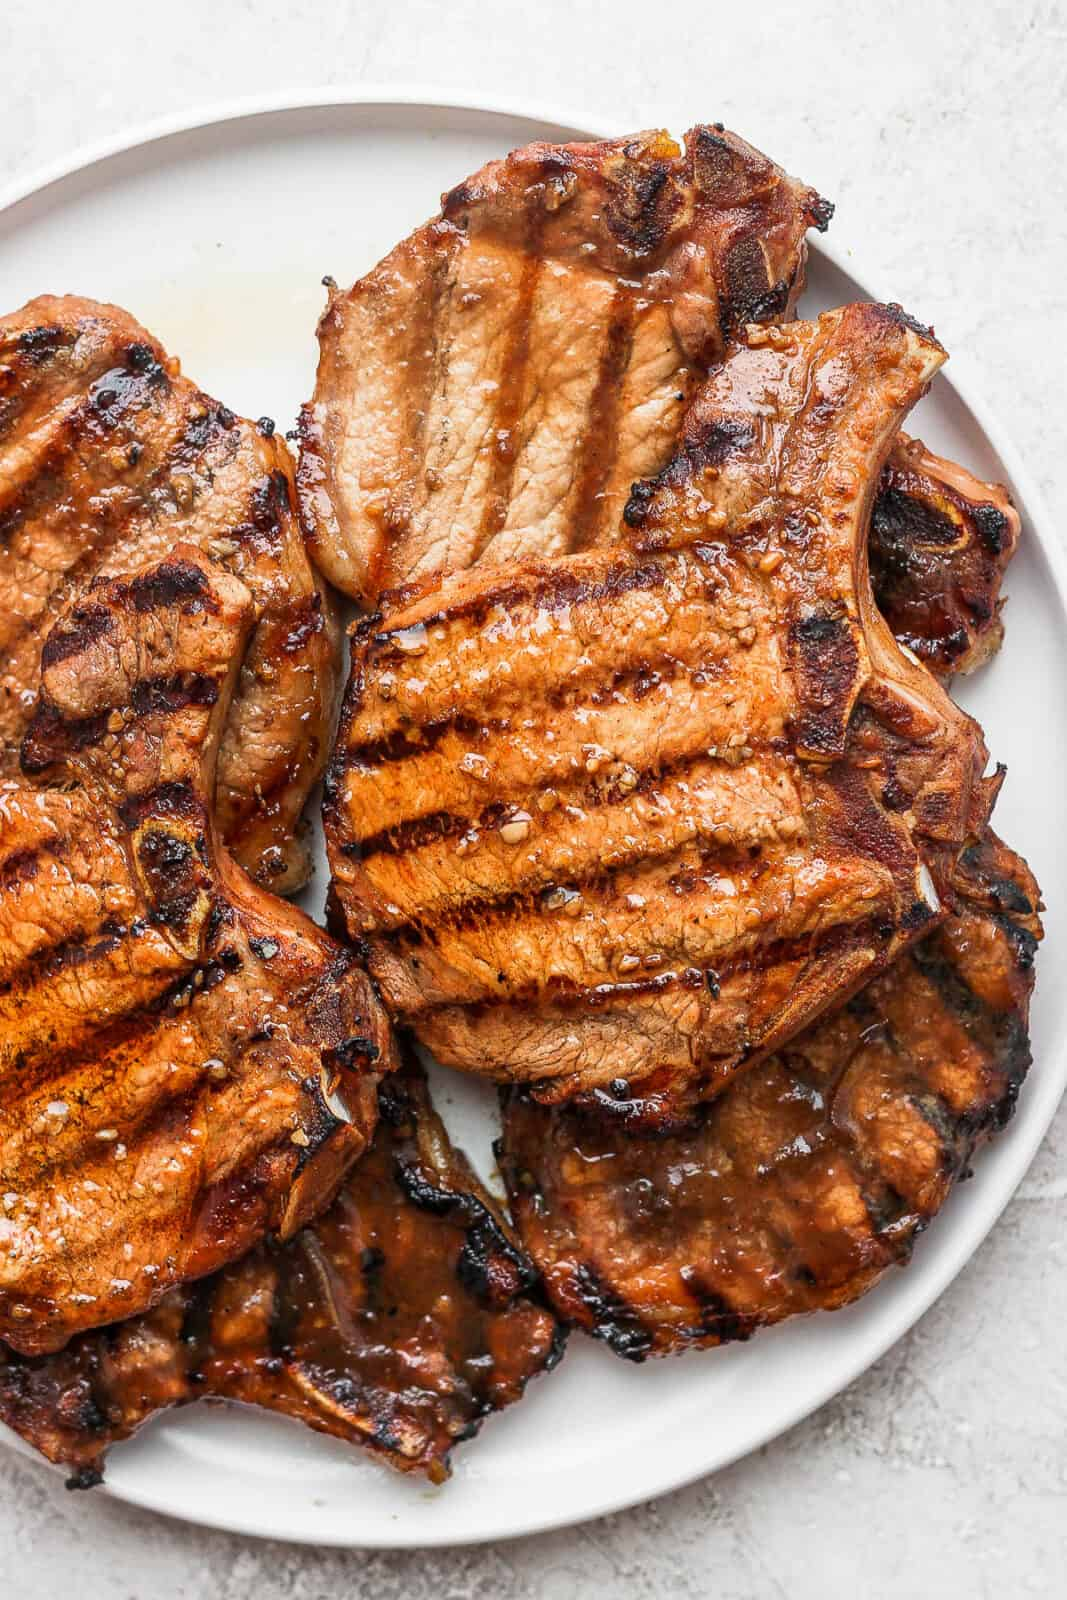 Grilled marinated pork chops on a plate.